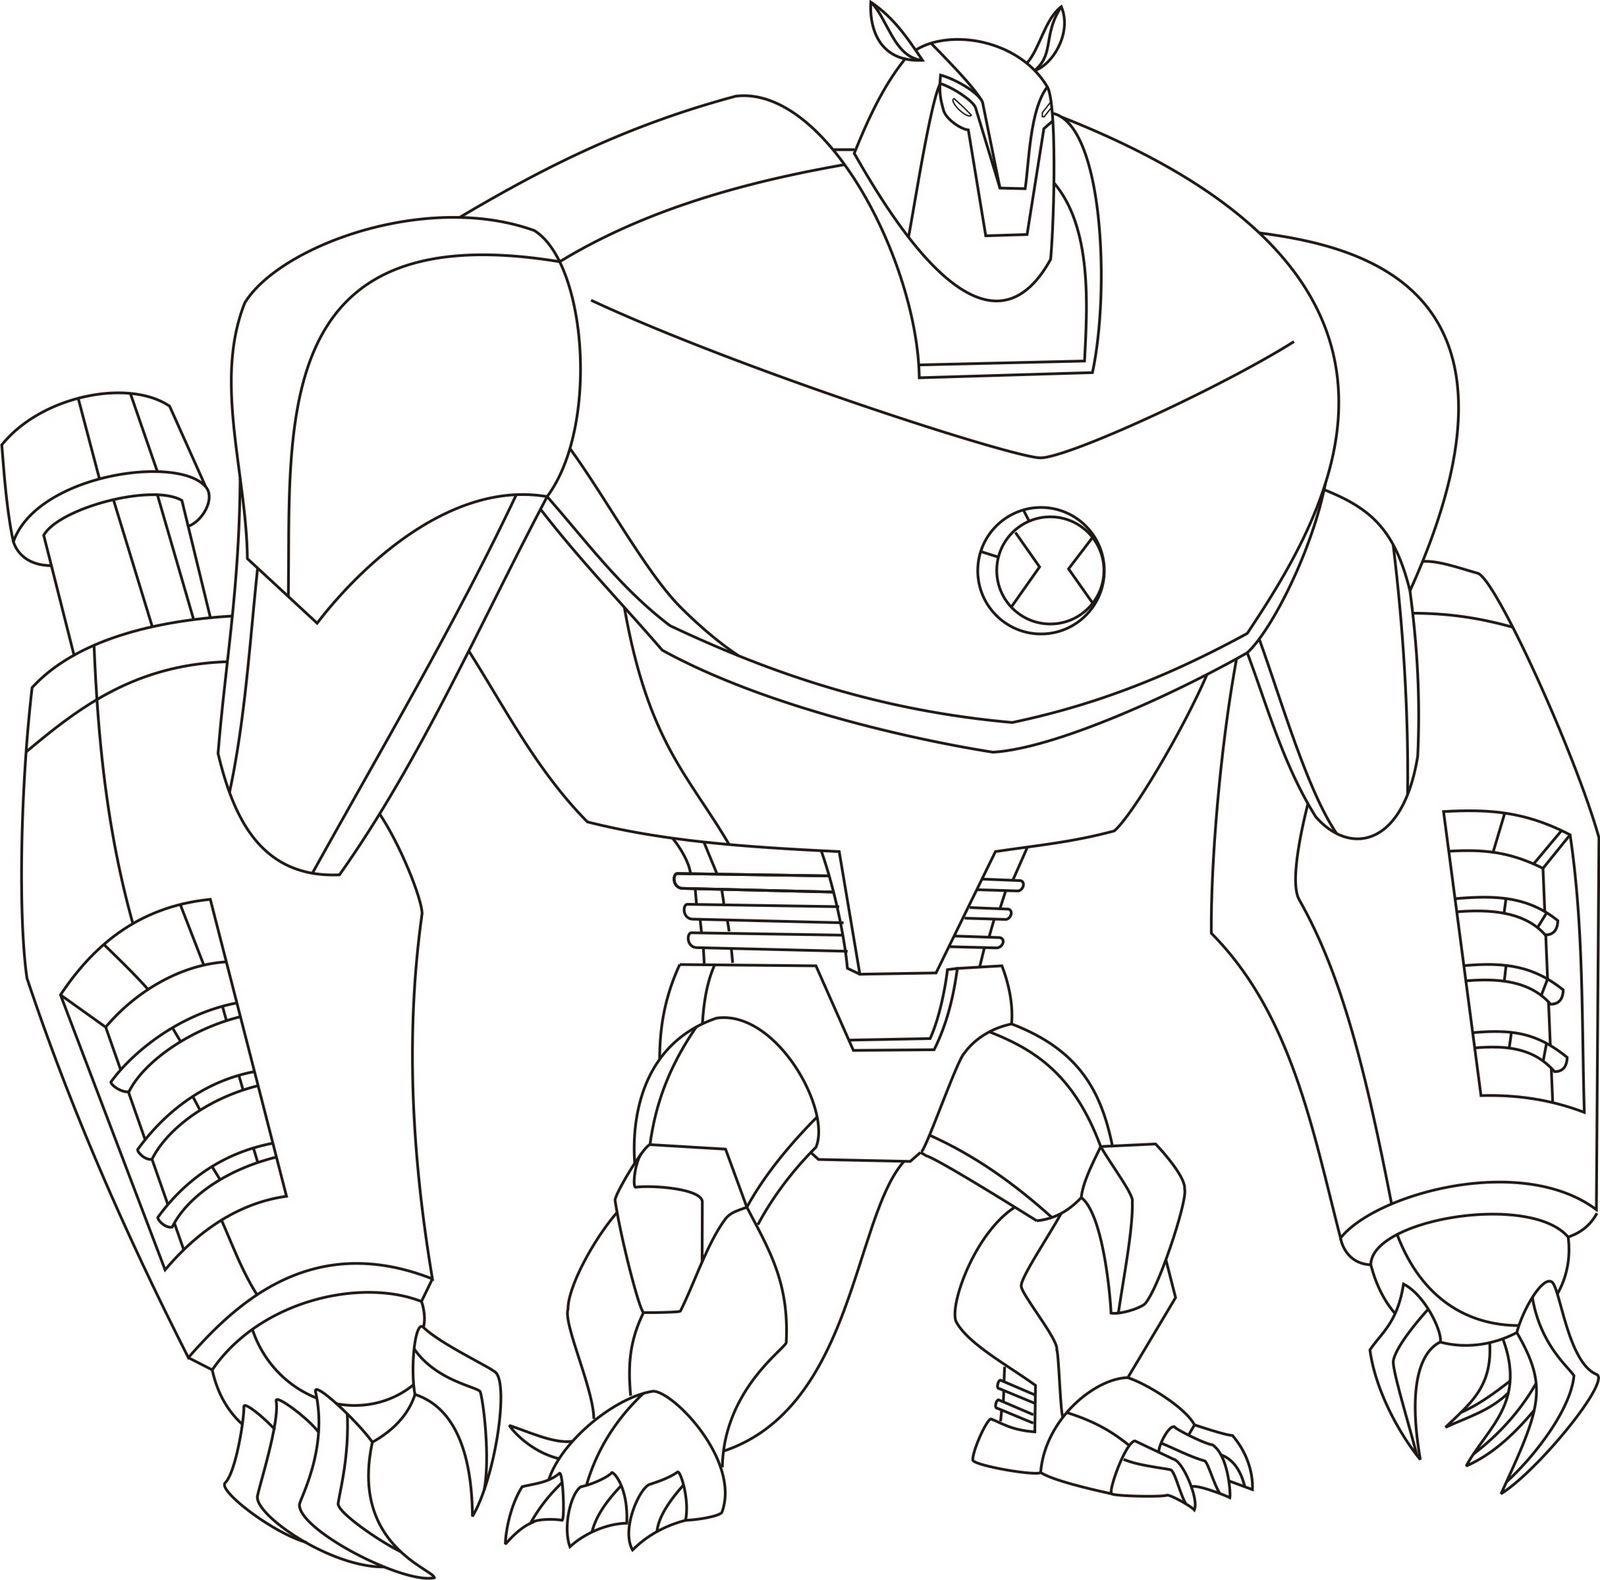 Ben 10 Ultimate Alien Coloring Pages | Stuff to Buy | Pinterest ...